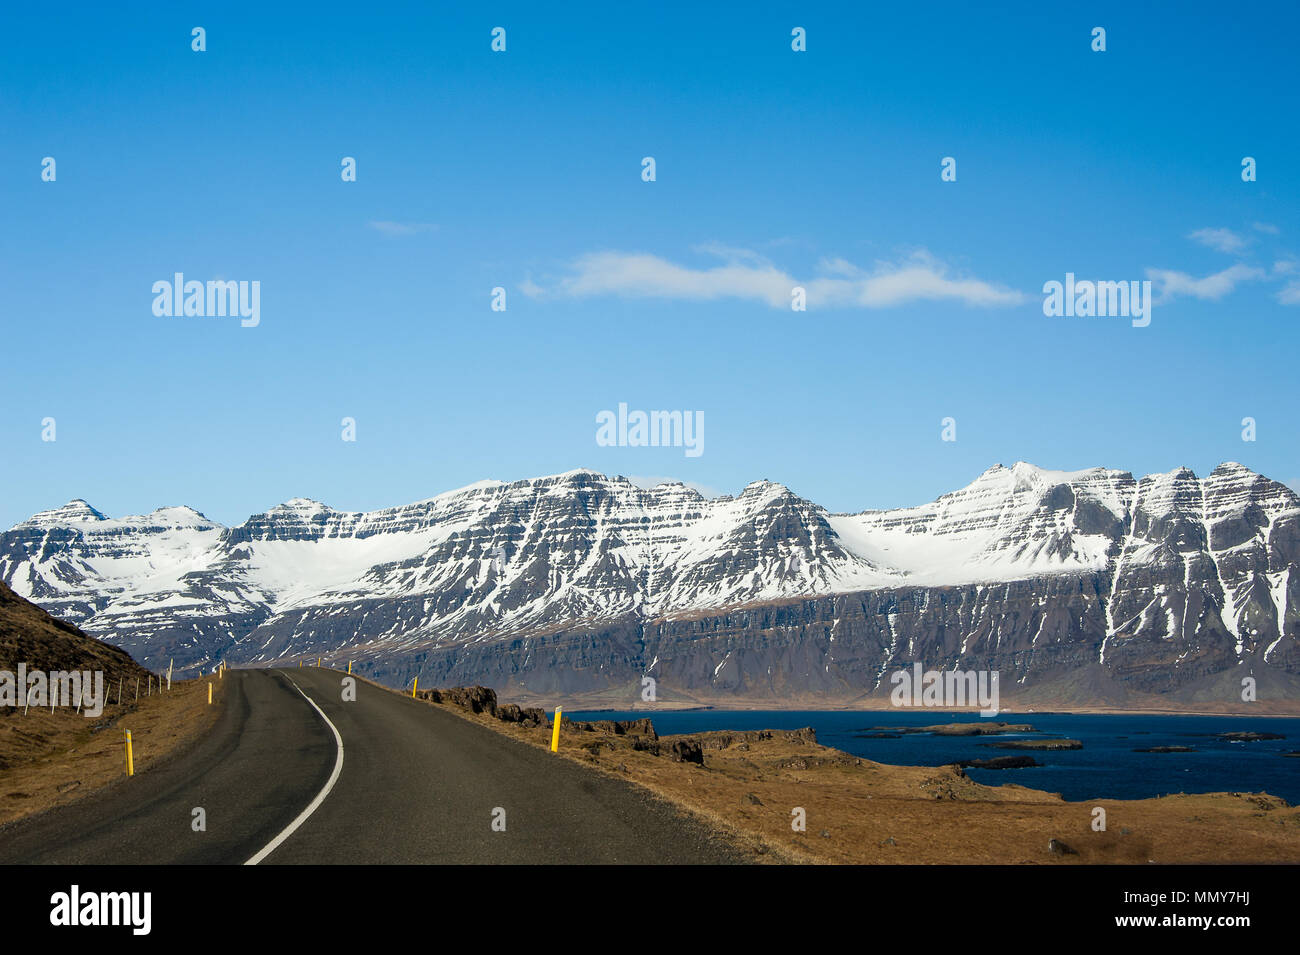 Spectacular scenery along the Eastern Fjords road near Seydisfjordur, Iceland. Stark contrast between the white, snow-capped peaks, blue water and sky Stock Photo